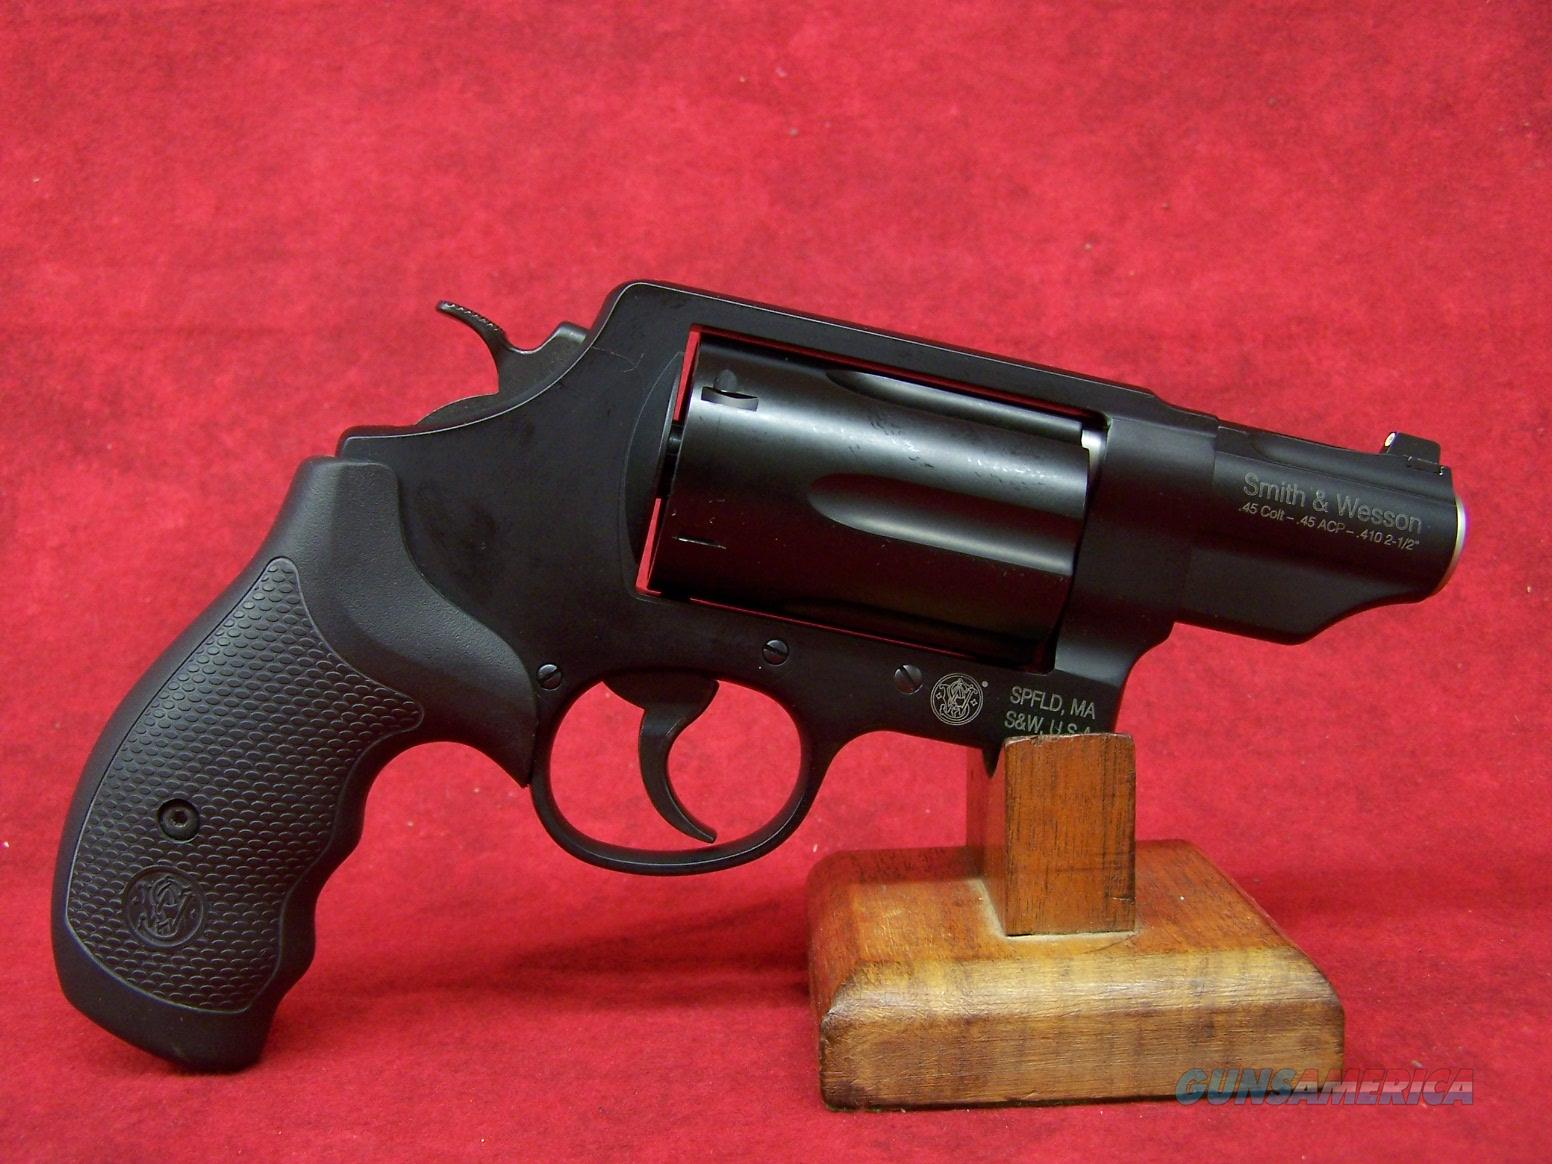 Smith & Wesson Governor .410 Gauge/.45 Colt/.45 ACP 2.75 Inch Barrel Matte Black Finish (162410)  Guns > Pistols > Smith & Wesson Revolvers > Full Frame Revolver